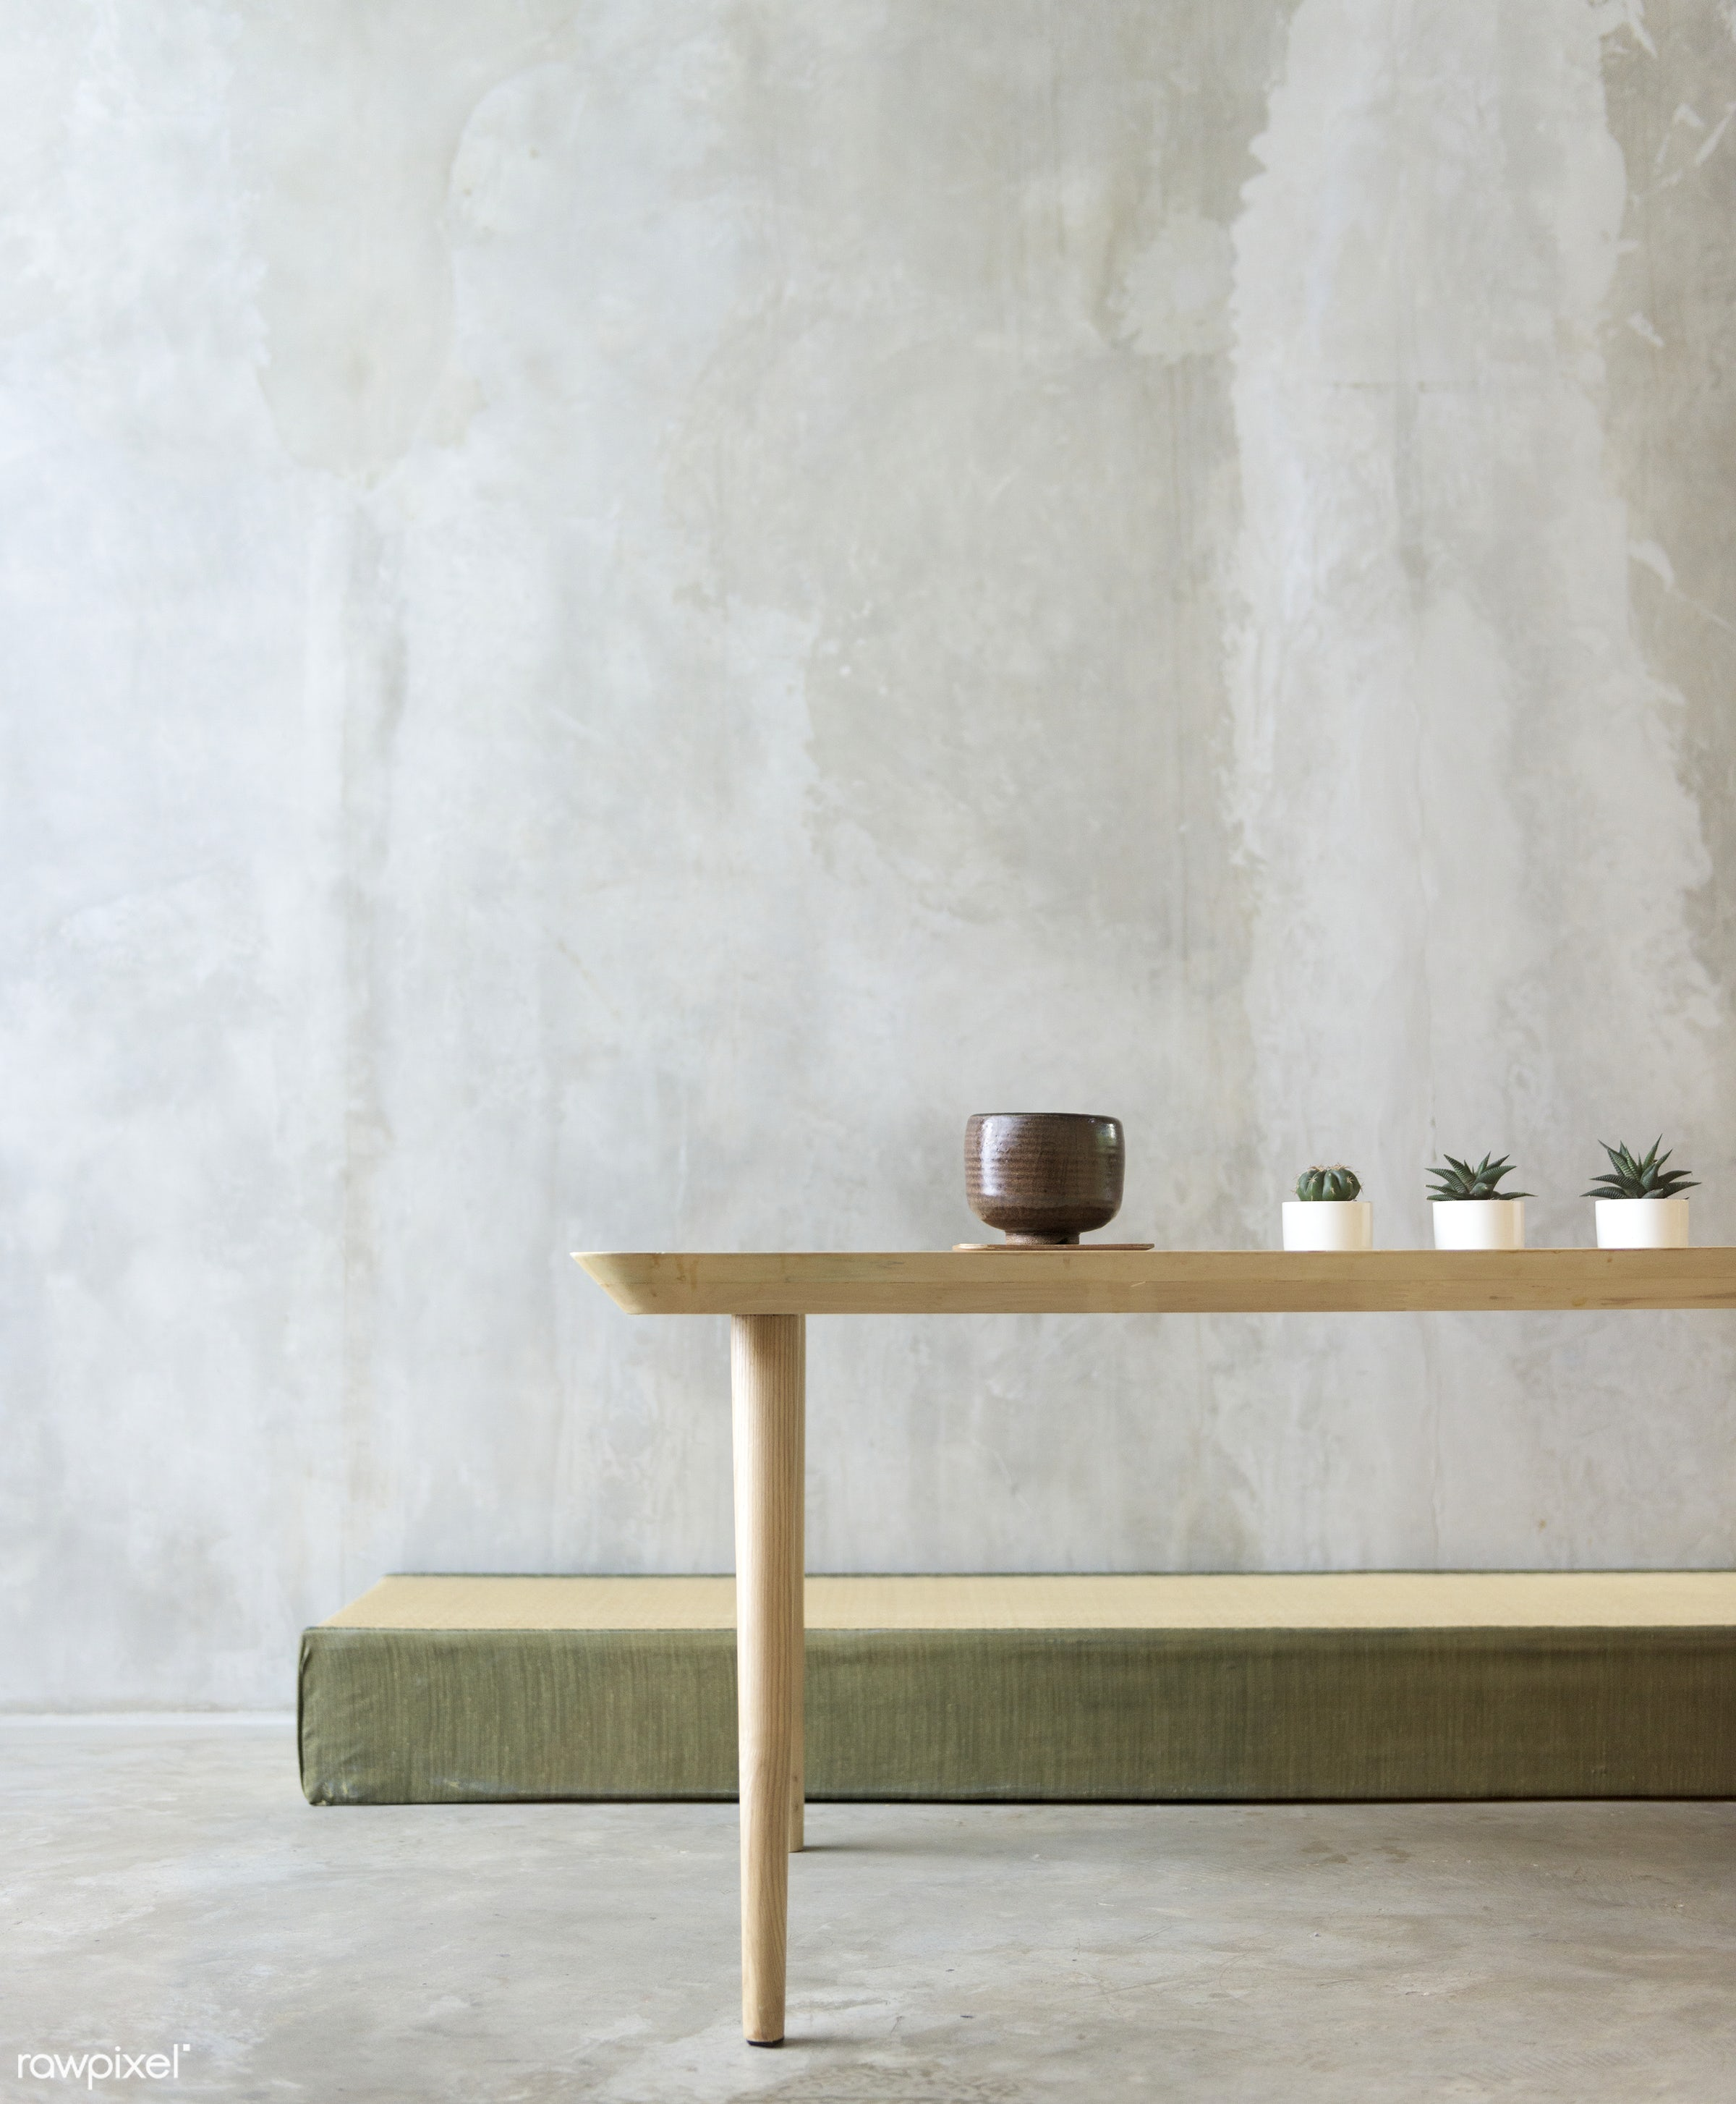 architecture, background, bed, blank, bowl, cactus, concept, copy space, cutout, design, empty, furniture, interior,...